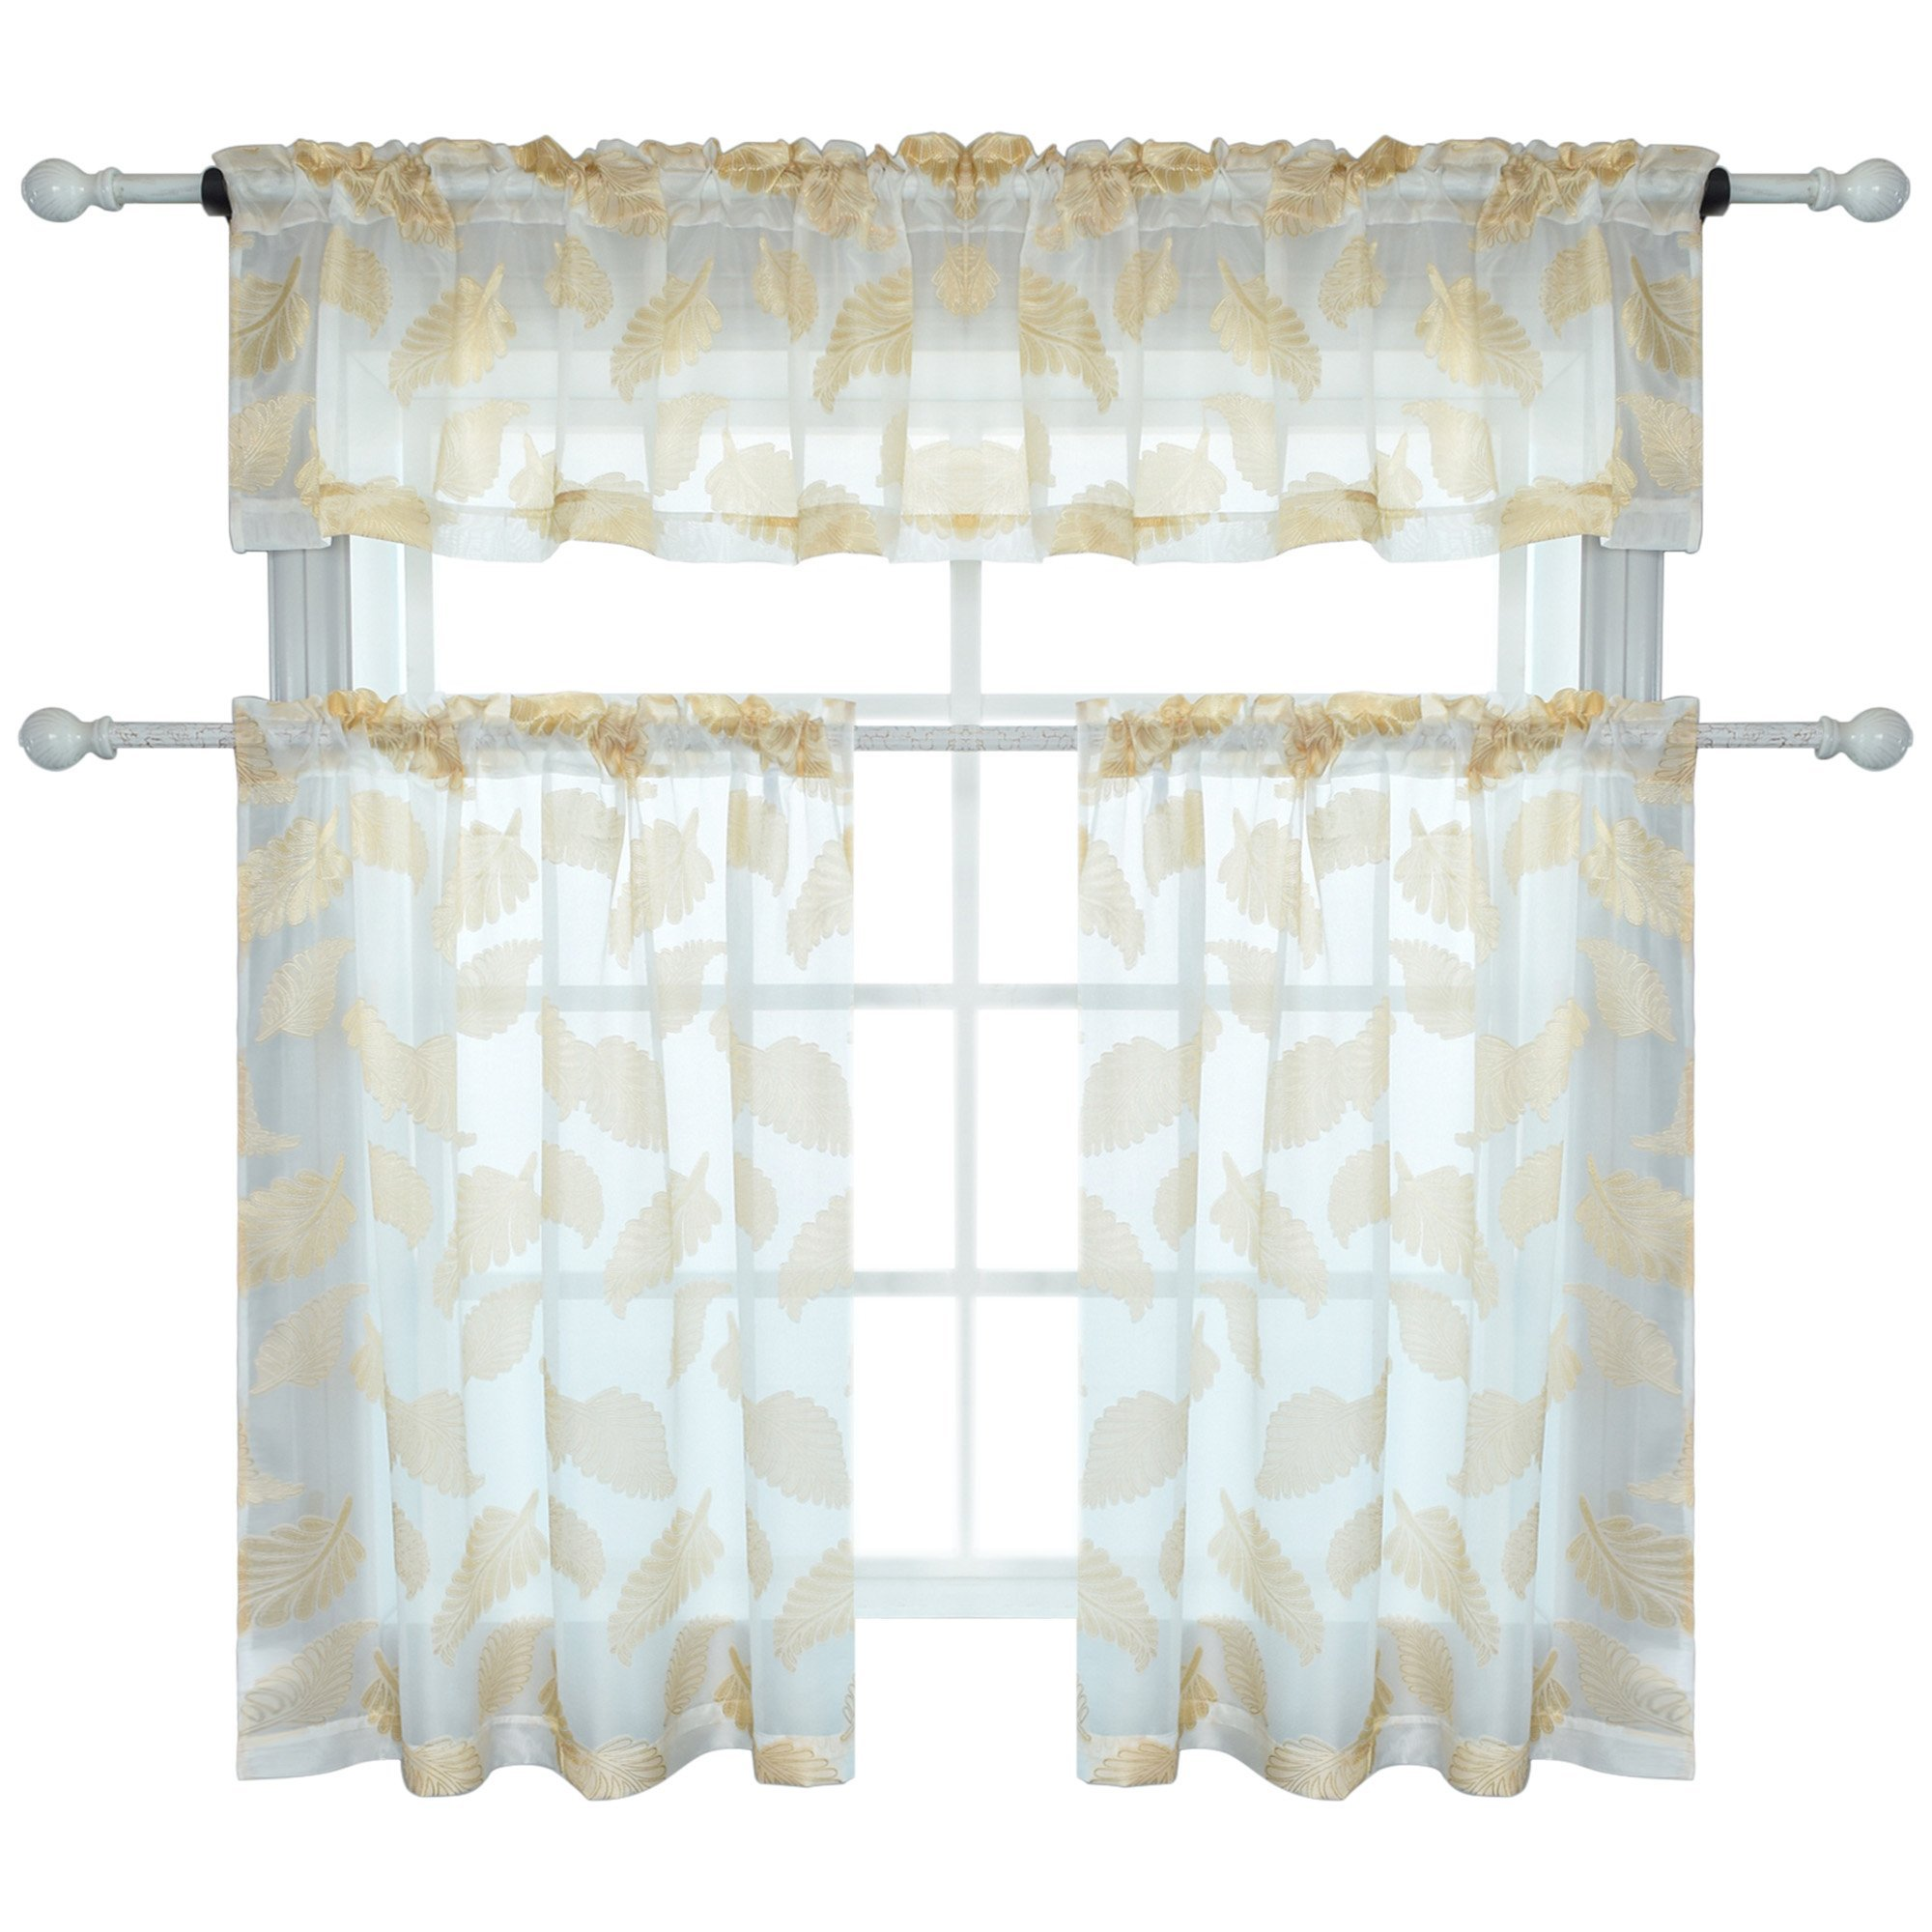 KEQIAOSUOCAI 3 Pieces Yellow Jacquard Voile Rod Pocket Window Kitchen Semi Sheer Curtain with Leaves Embroidery 1 Panel Valance and 2 Tier Panels